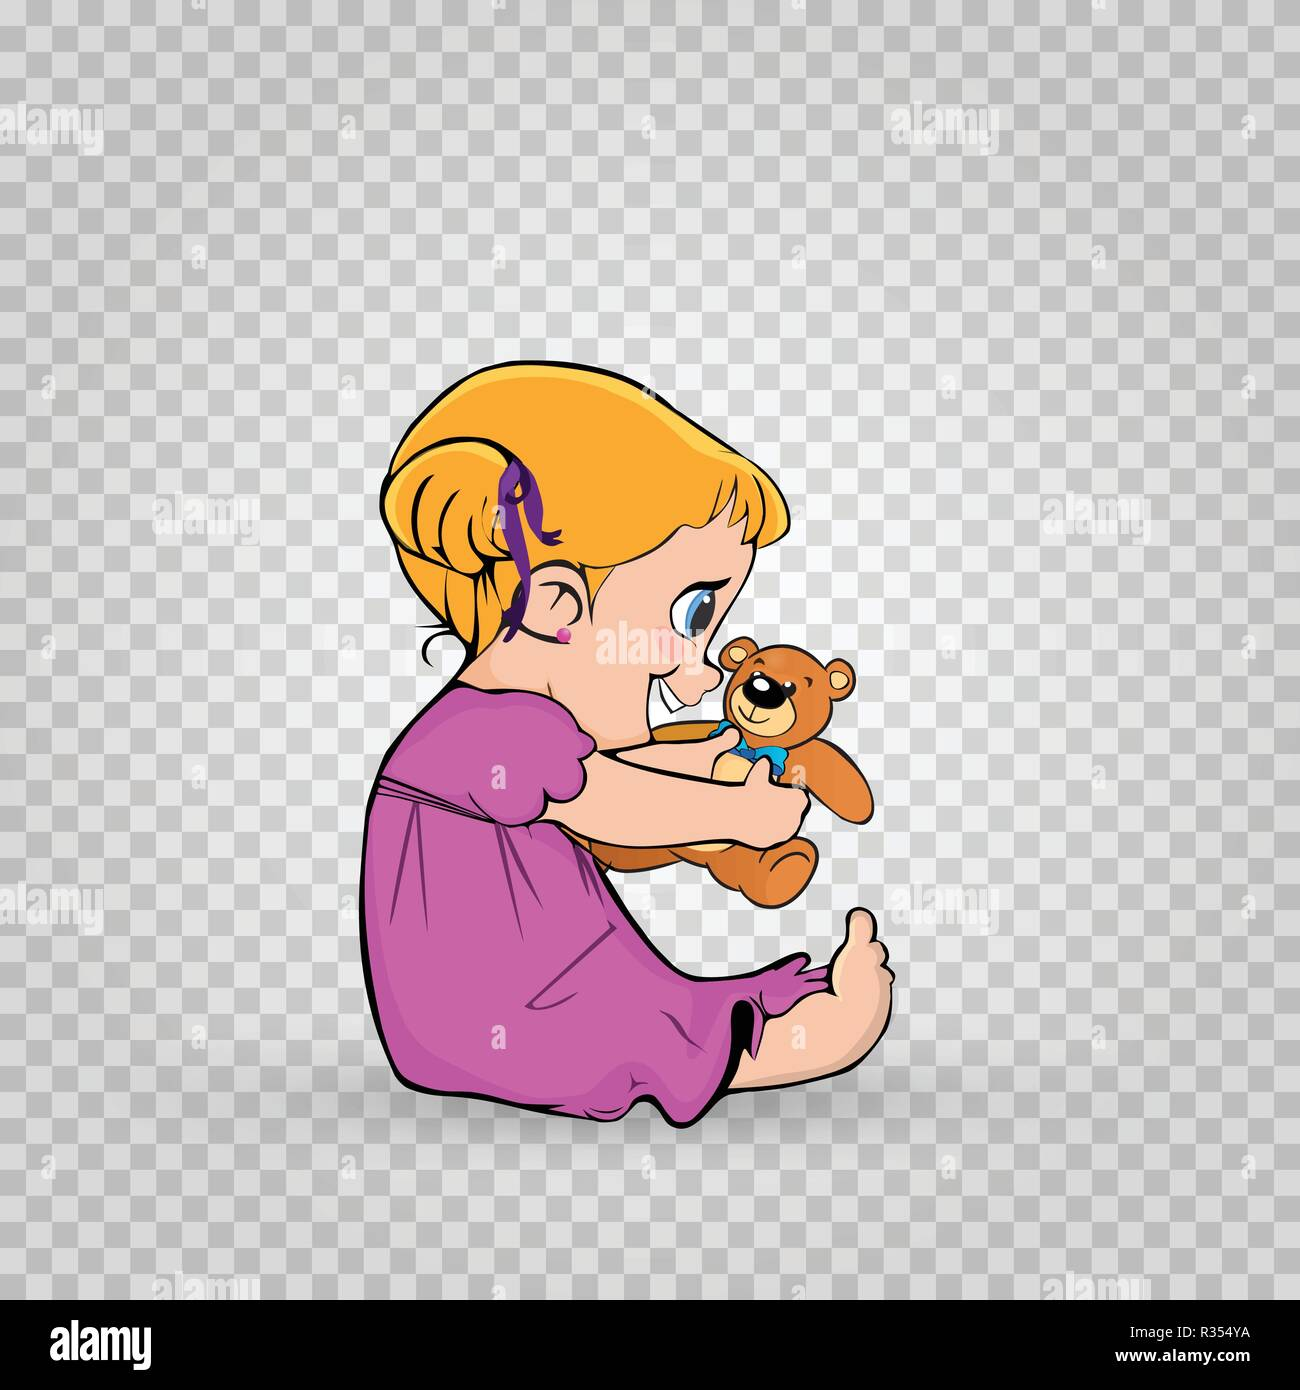 Cute little kawaii baby girl character in pink dress playing with teddy bear toy gift sitting on the floor isolated on transparent background. Vector  - Stock Vector